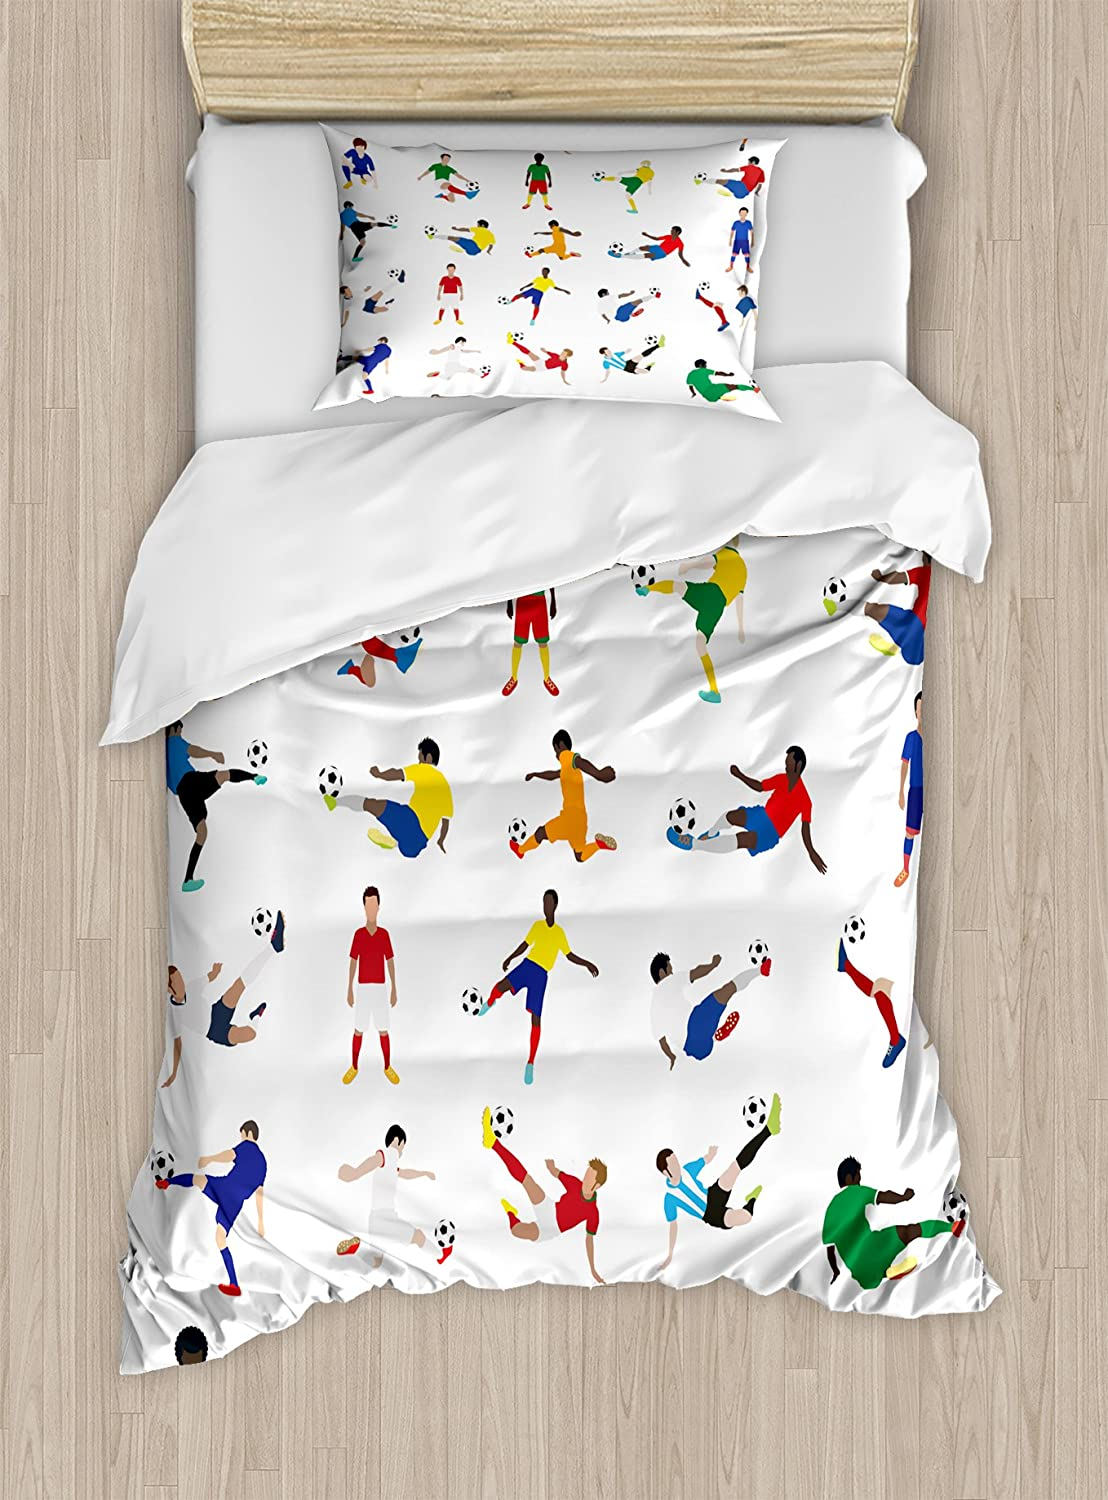 Ambesonne Sports Duvet Cover Set, Group of Soccer Players League Pastime Practicing Different Poses Training, Decorative 2 Piece Bedding Set with 1 Pillow Sham, Twin Size, White Multicolor